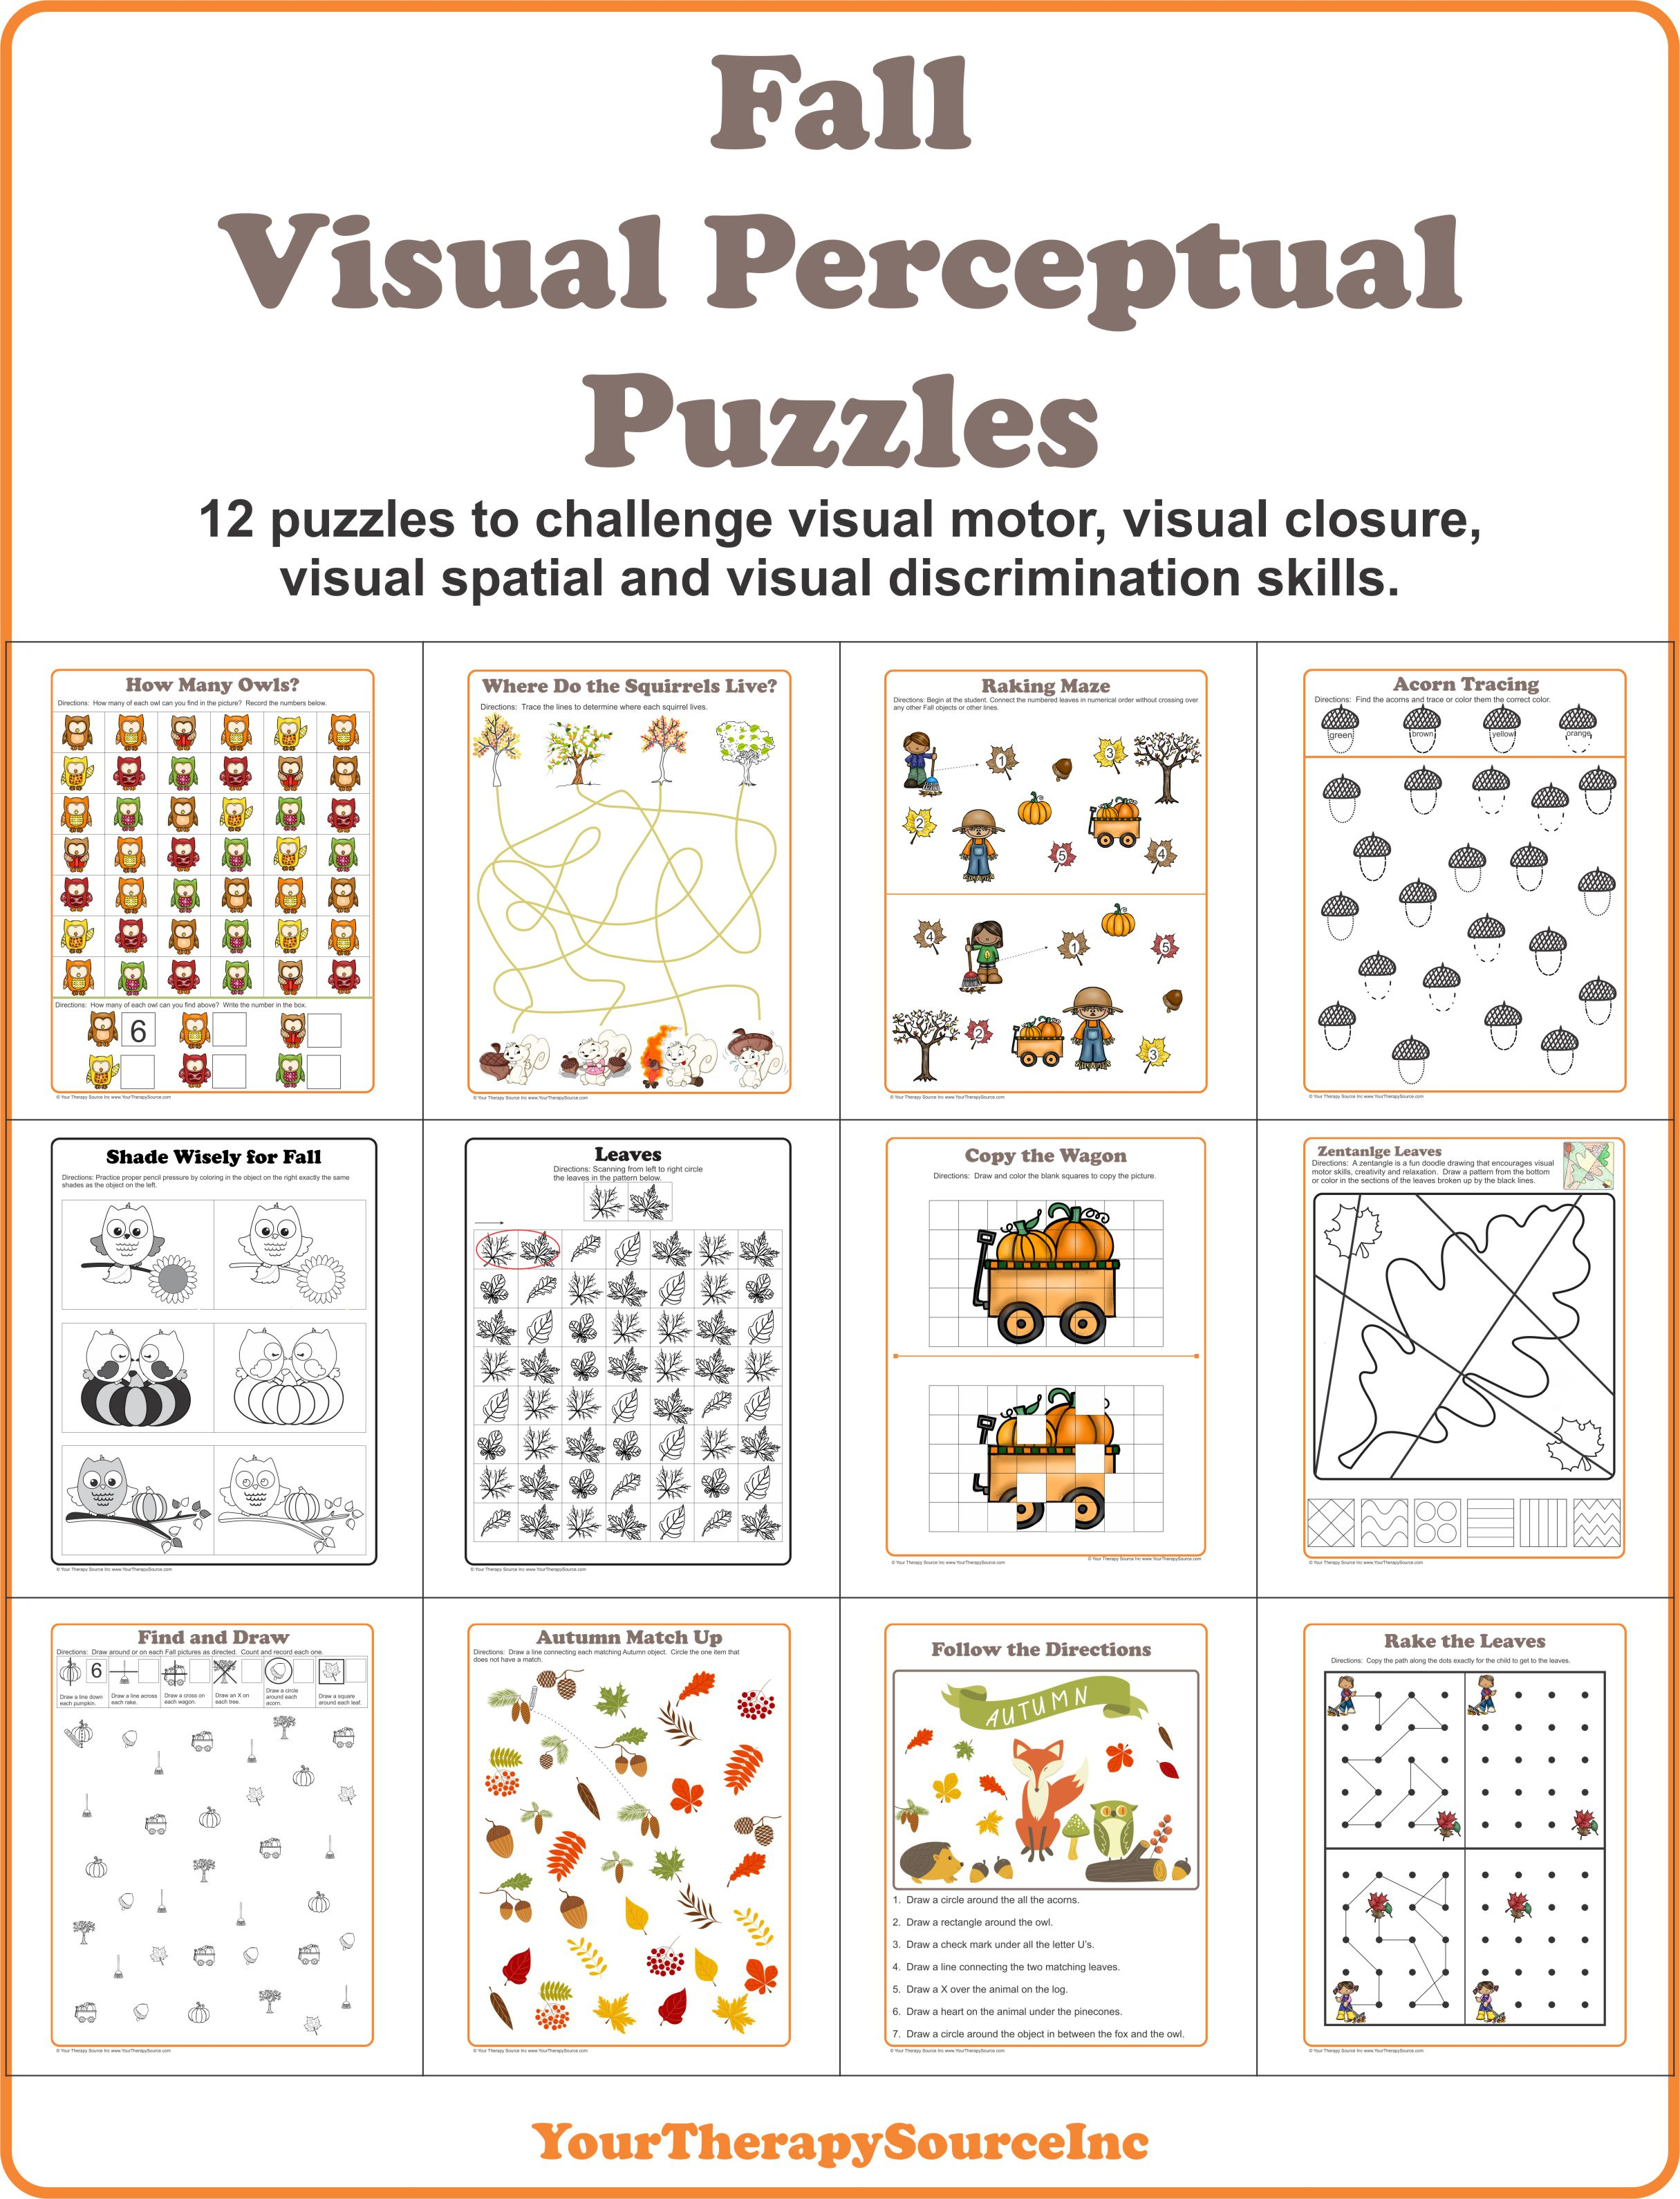 Fall Visual Perceptual Puzzles - Your Therapy Source - Free Printable Visual Puzzles